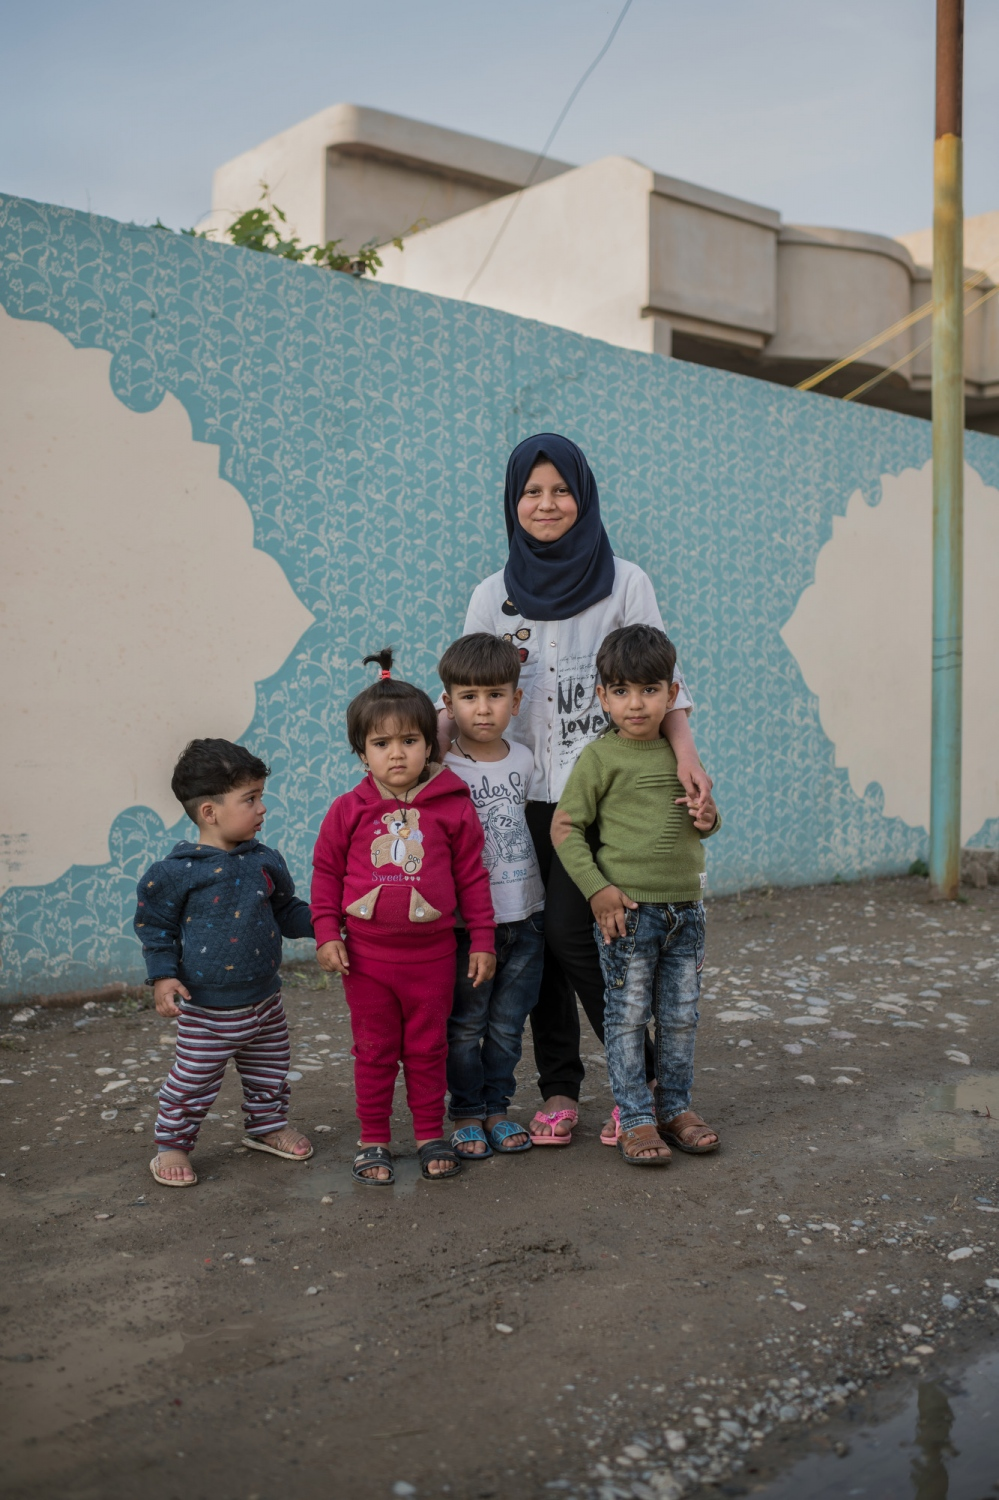 MOSUL 20180413 Susan Khalouq Jawdat, 11 years old, with her siblings and cousins. She lives in the eastern part of Mosul with her mother, father and three siblings. Her dad is self employed and her mother a house wife. They had to flee when Daesh took their village in June 2014, when they came back all their things were gone or destroyed on account of Daesh occupying their house. We meet Susan in her home. What is your favourite thing? I had a doll that I loved. I got it from my father. But I lost it when we where on the run. What do you hate the most? All the destroyed houses. What do you like to do in your spare time? I like to play with my siblings and to paint and draw. What do you want to be when you grow up? I want to be a math teacher. I like mathematics. Do you like school? Yes I do. Do you have good grades? Decent, she shyly says. I have about 70 to 90 percent. (Iraq has a grading system based on percentages, where 100 is they highest grade). What are your dreams? I dream to grow up, become a teacher and help people. Who do you want to help? Those that are poor. You are 11 years old, what do you dream of in the near future? I dream about passing school. You have been forced to move a lot in the last three years, have you missed a lot of school? No. Was it hard to get new friends at school? The first weeks it was a bit hard to connect with, but the third week there was no problem. Photo: Vilhelm Stokstad / Kontinent